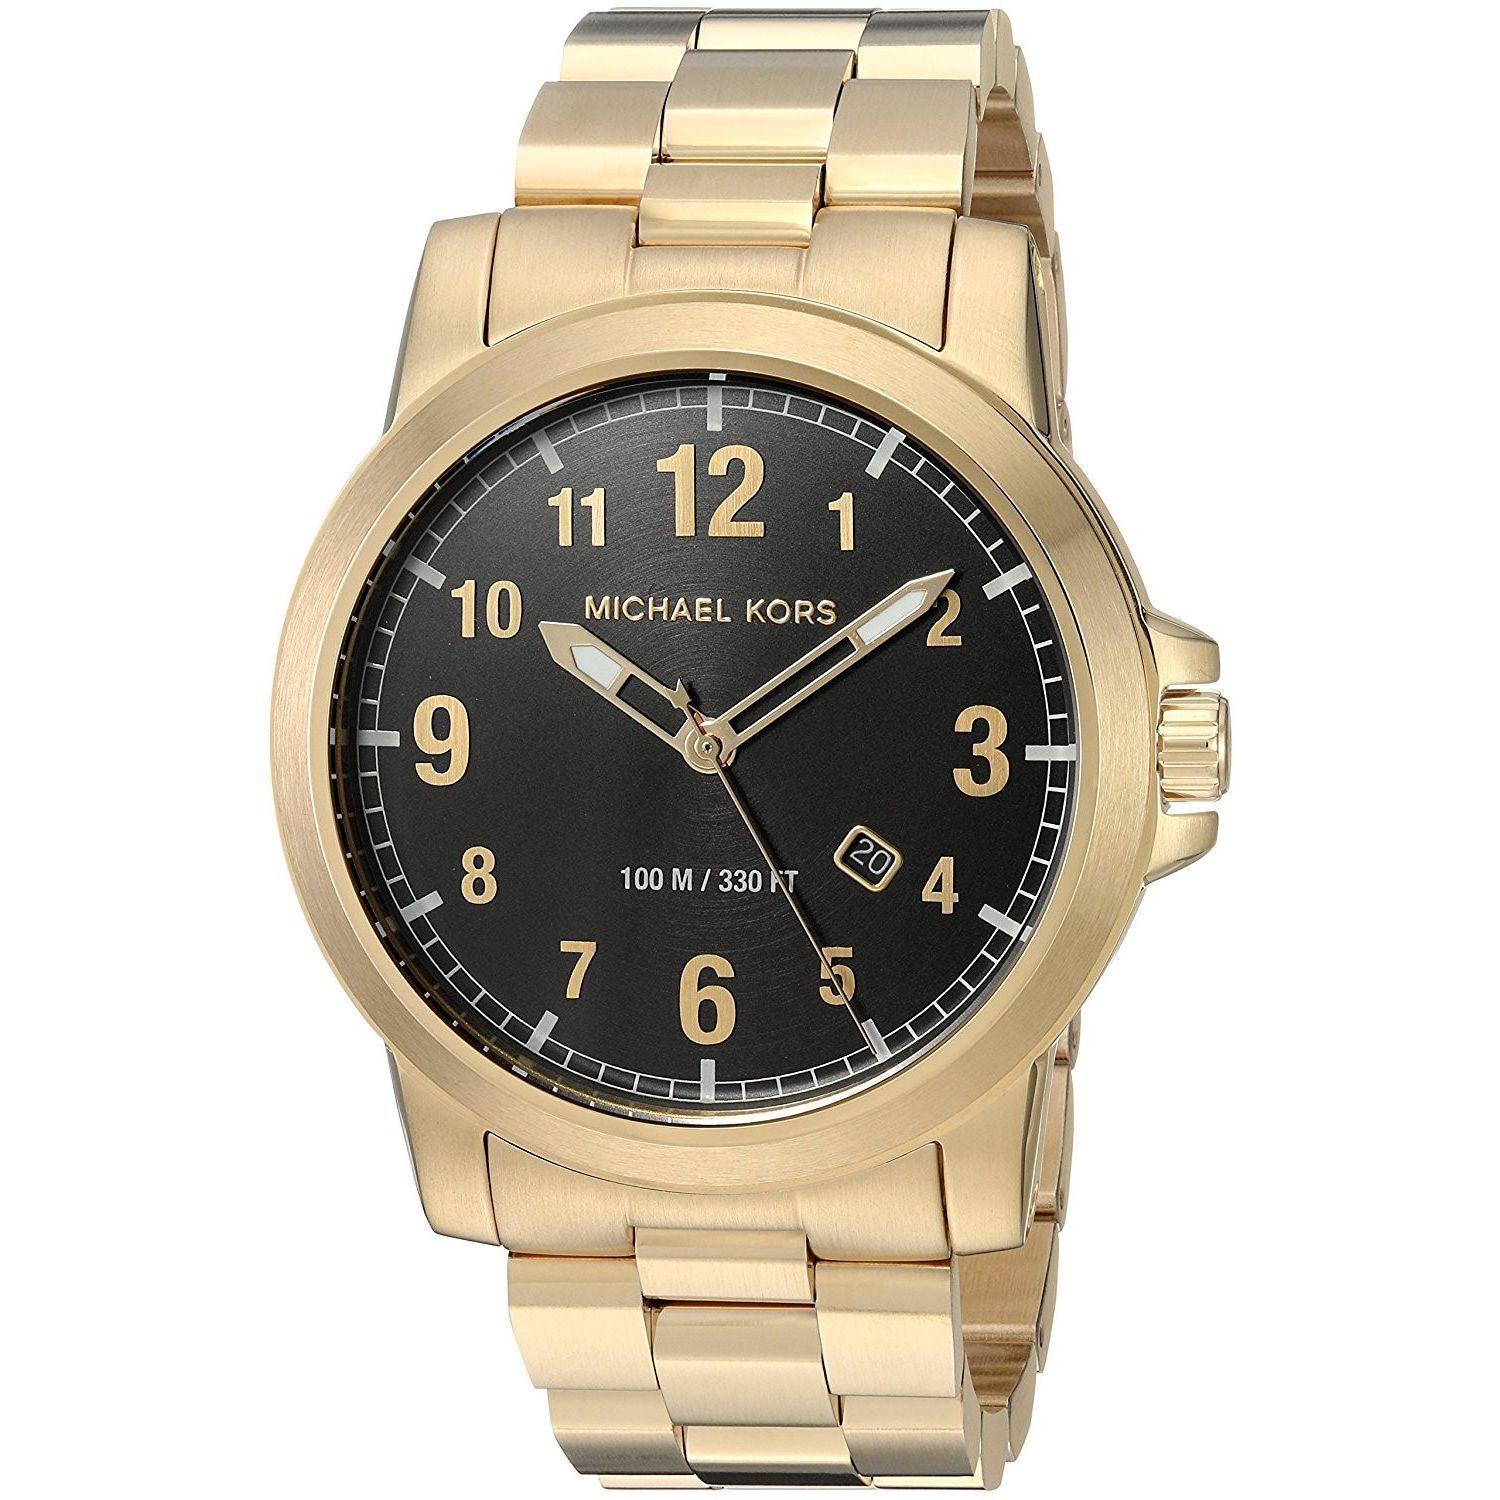 f737a8ee74f4 Shop Michael Kors Men s MK8555  Paxton  Gold-Tone Stainless Steel Watch -  Free Shipping Today - Overstock - 14778080